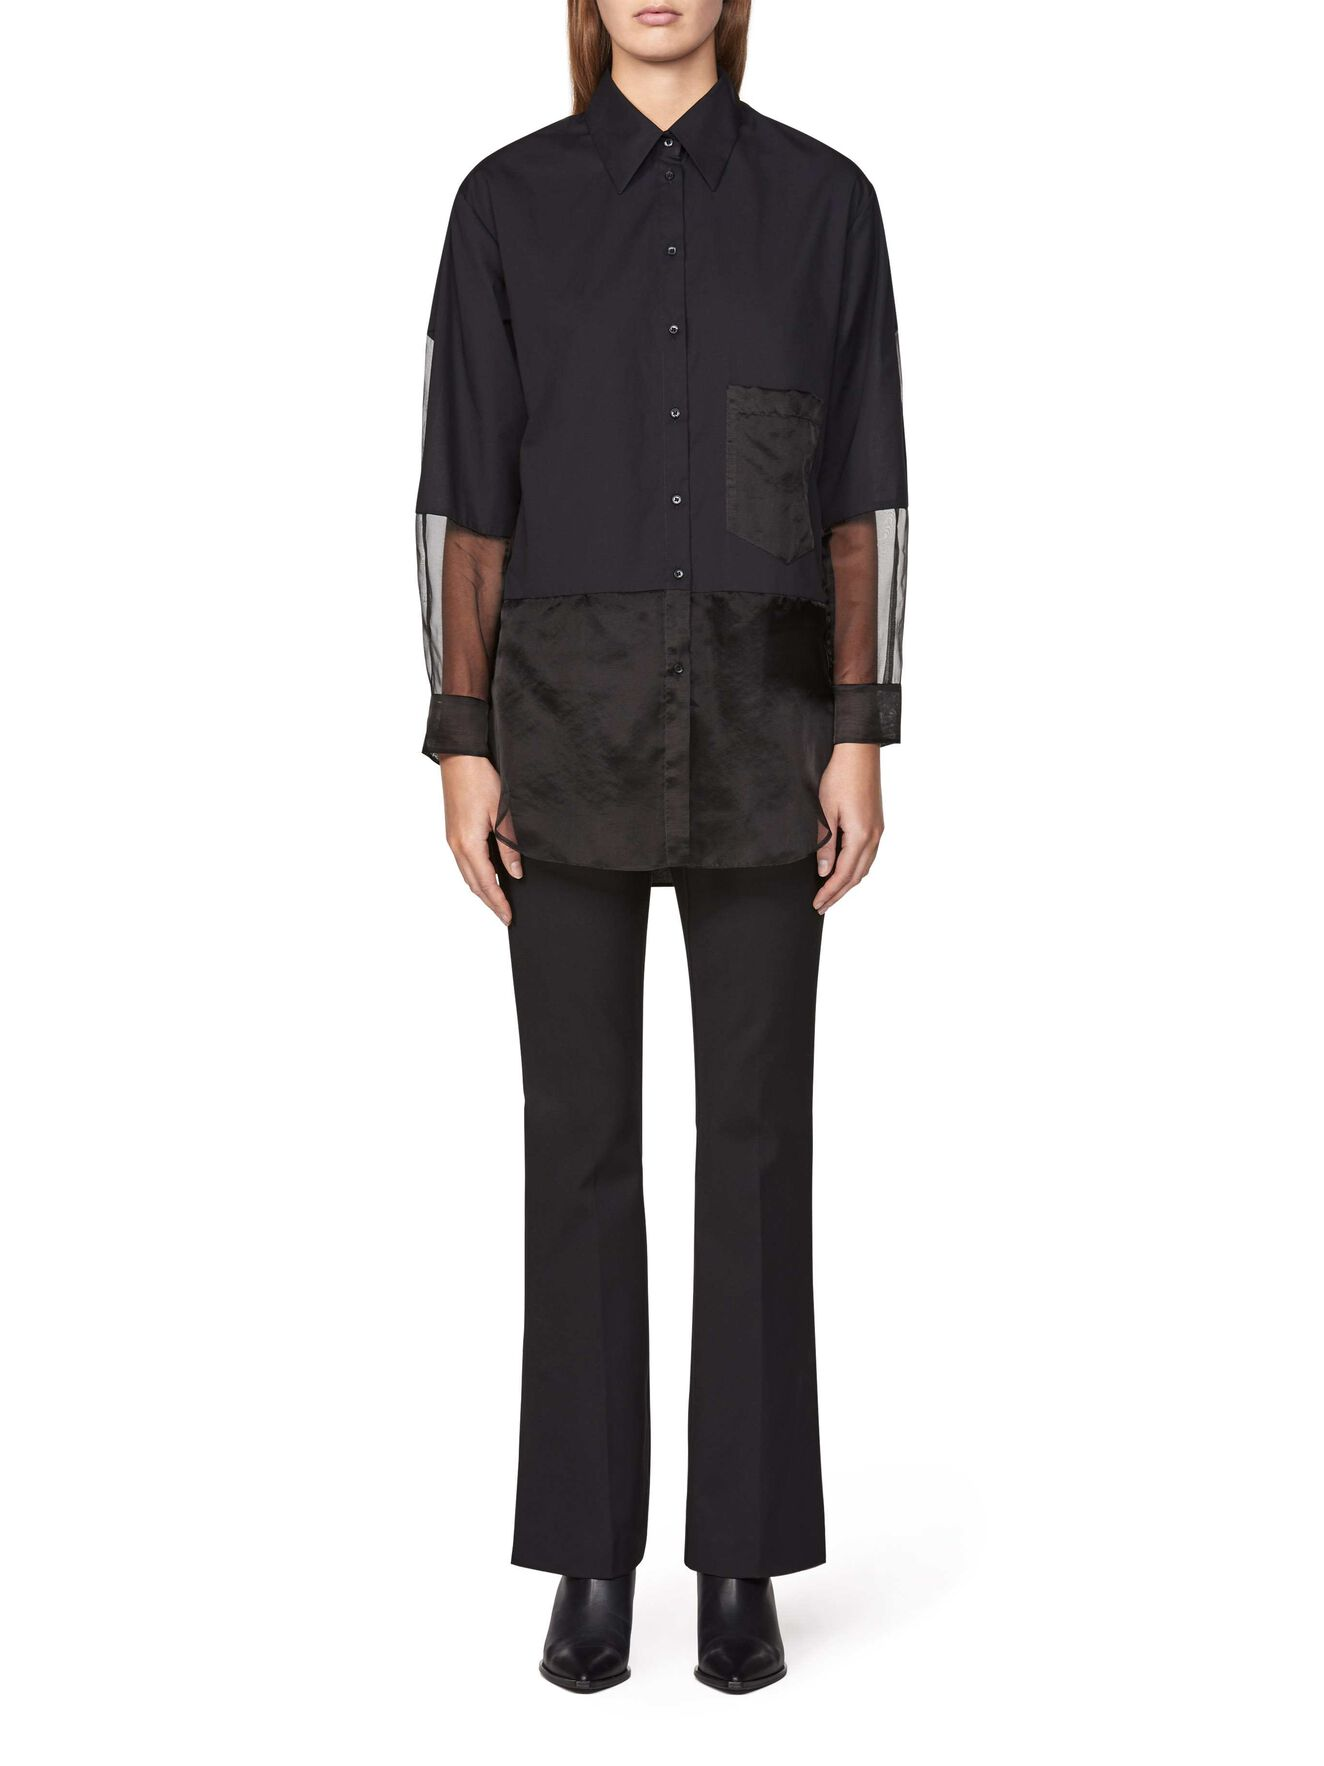 KAKIA BLUSE in Midnight Black from Tiger of Sweden